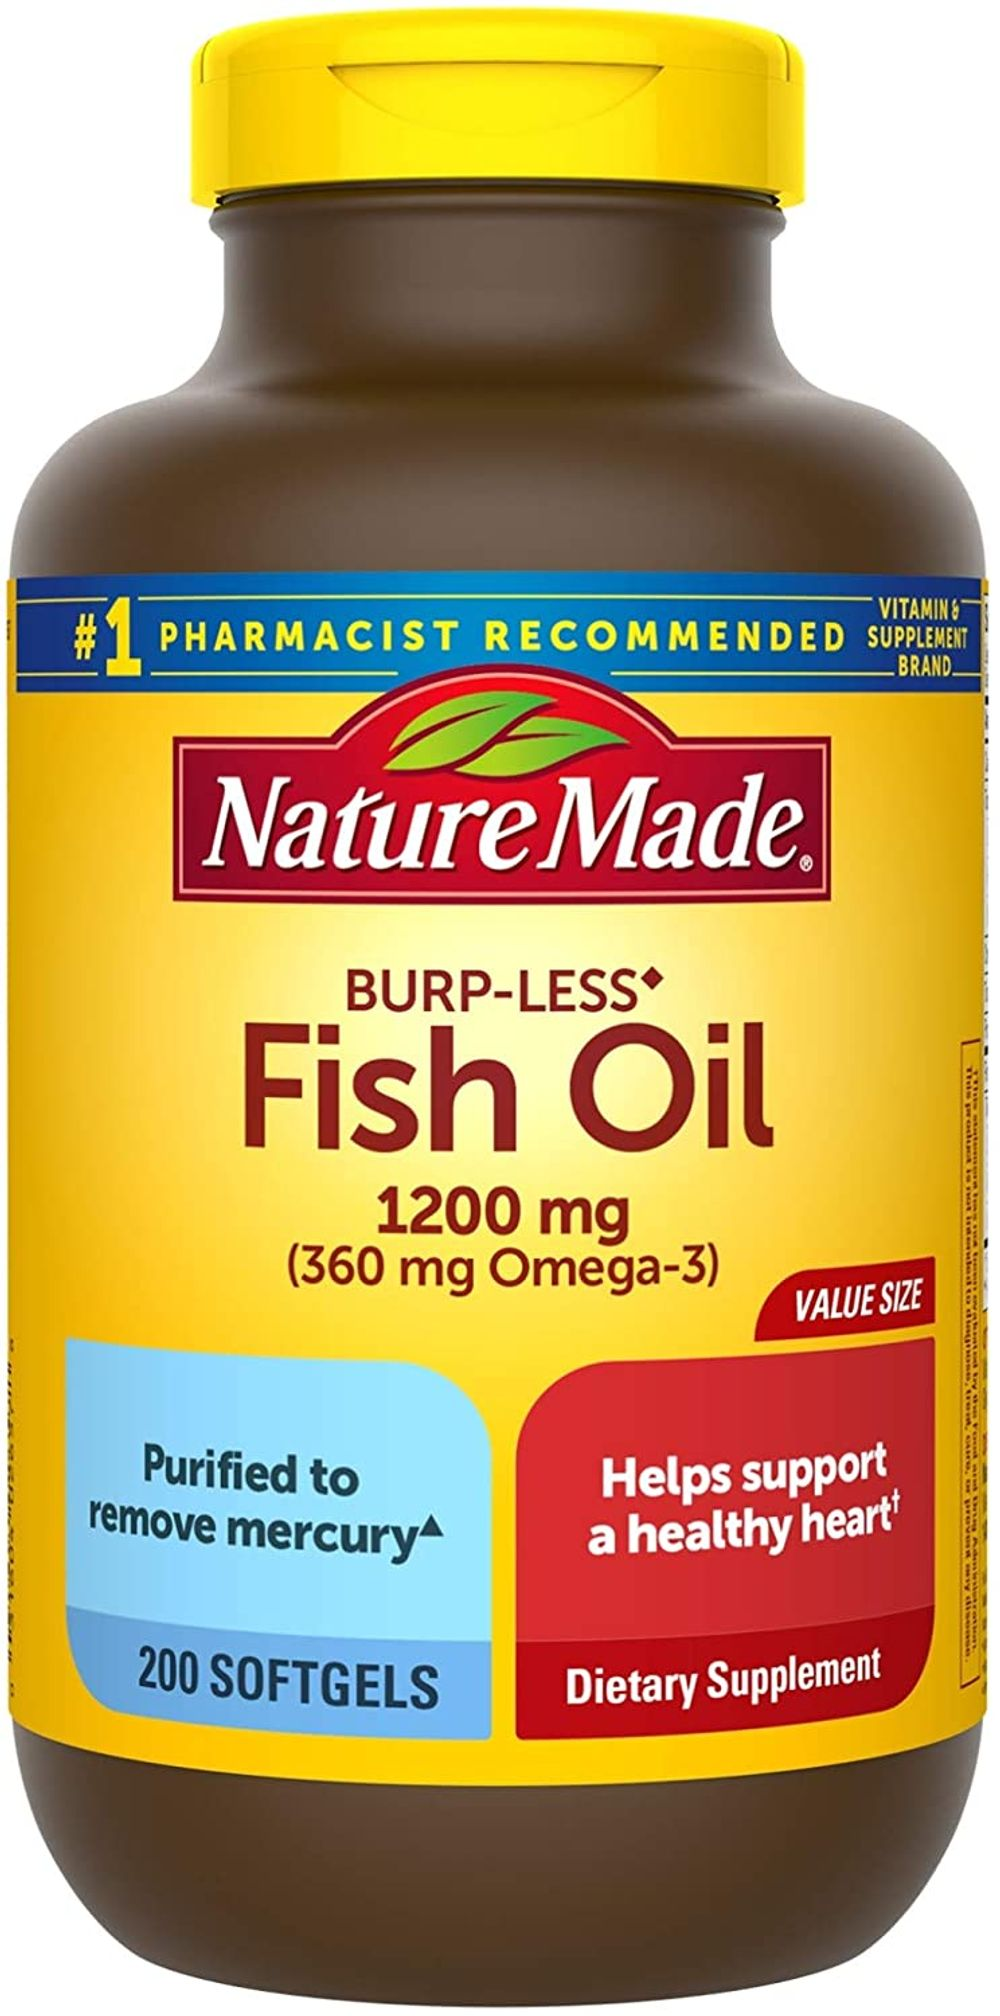 Nature Made Burp-Less Fish Oil 1200 mg Softgels, 200 Count for Heart Health† (Packaging May Vary)